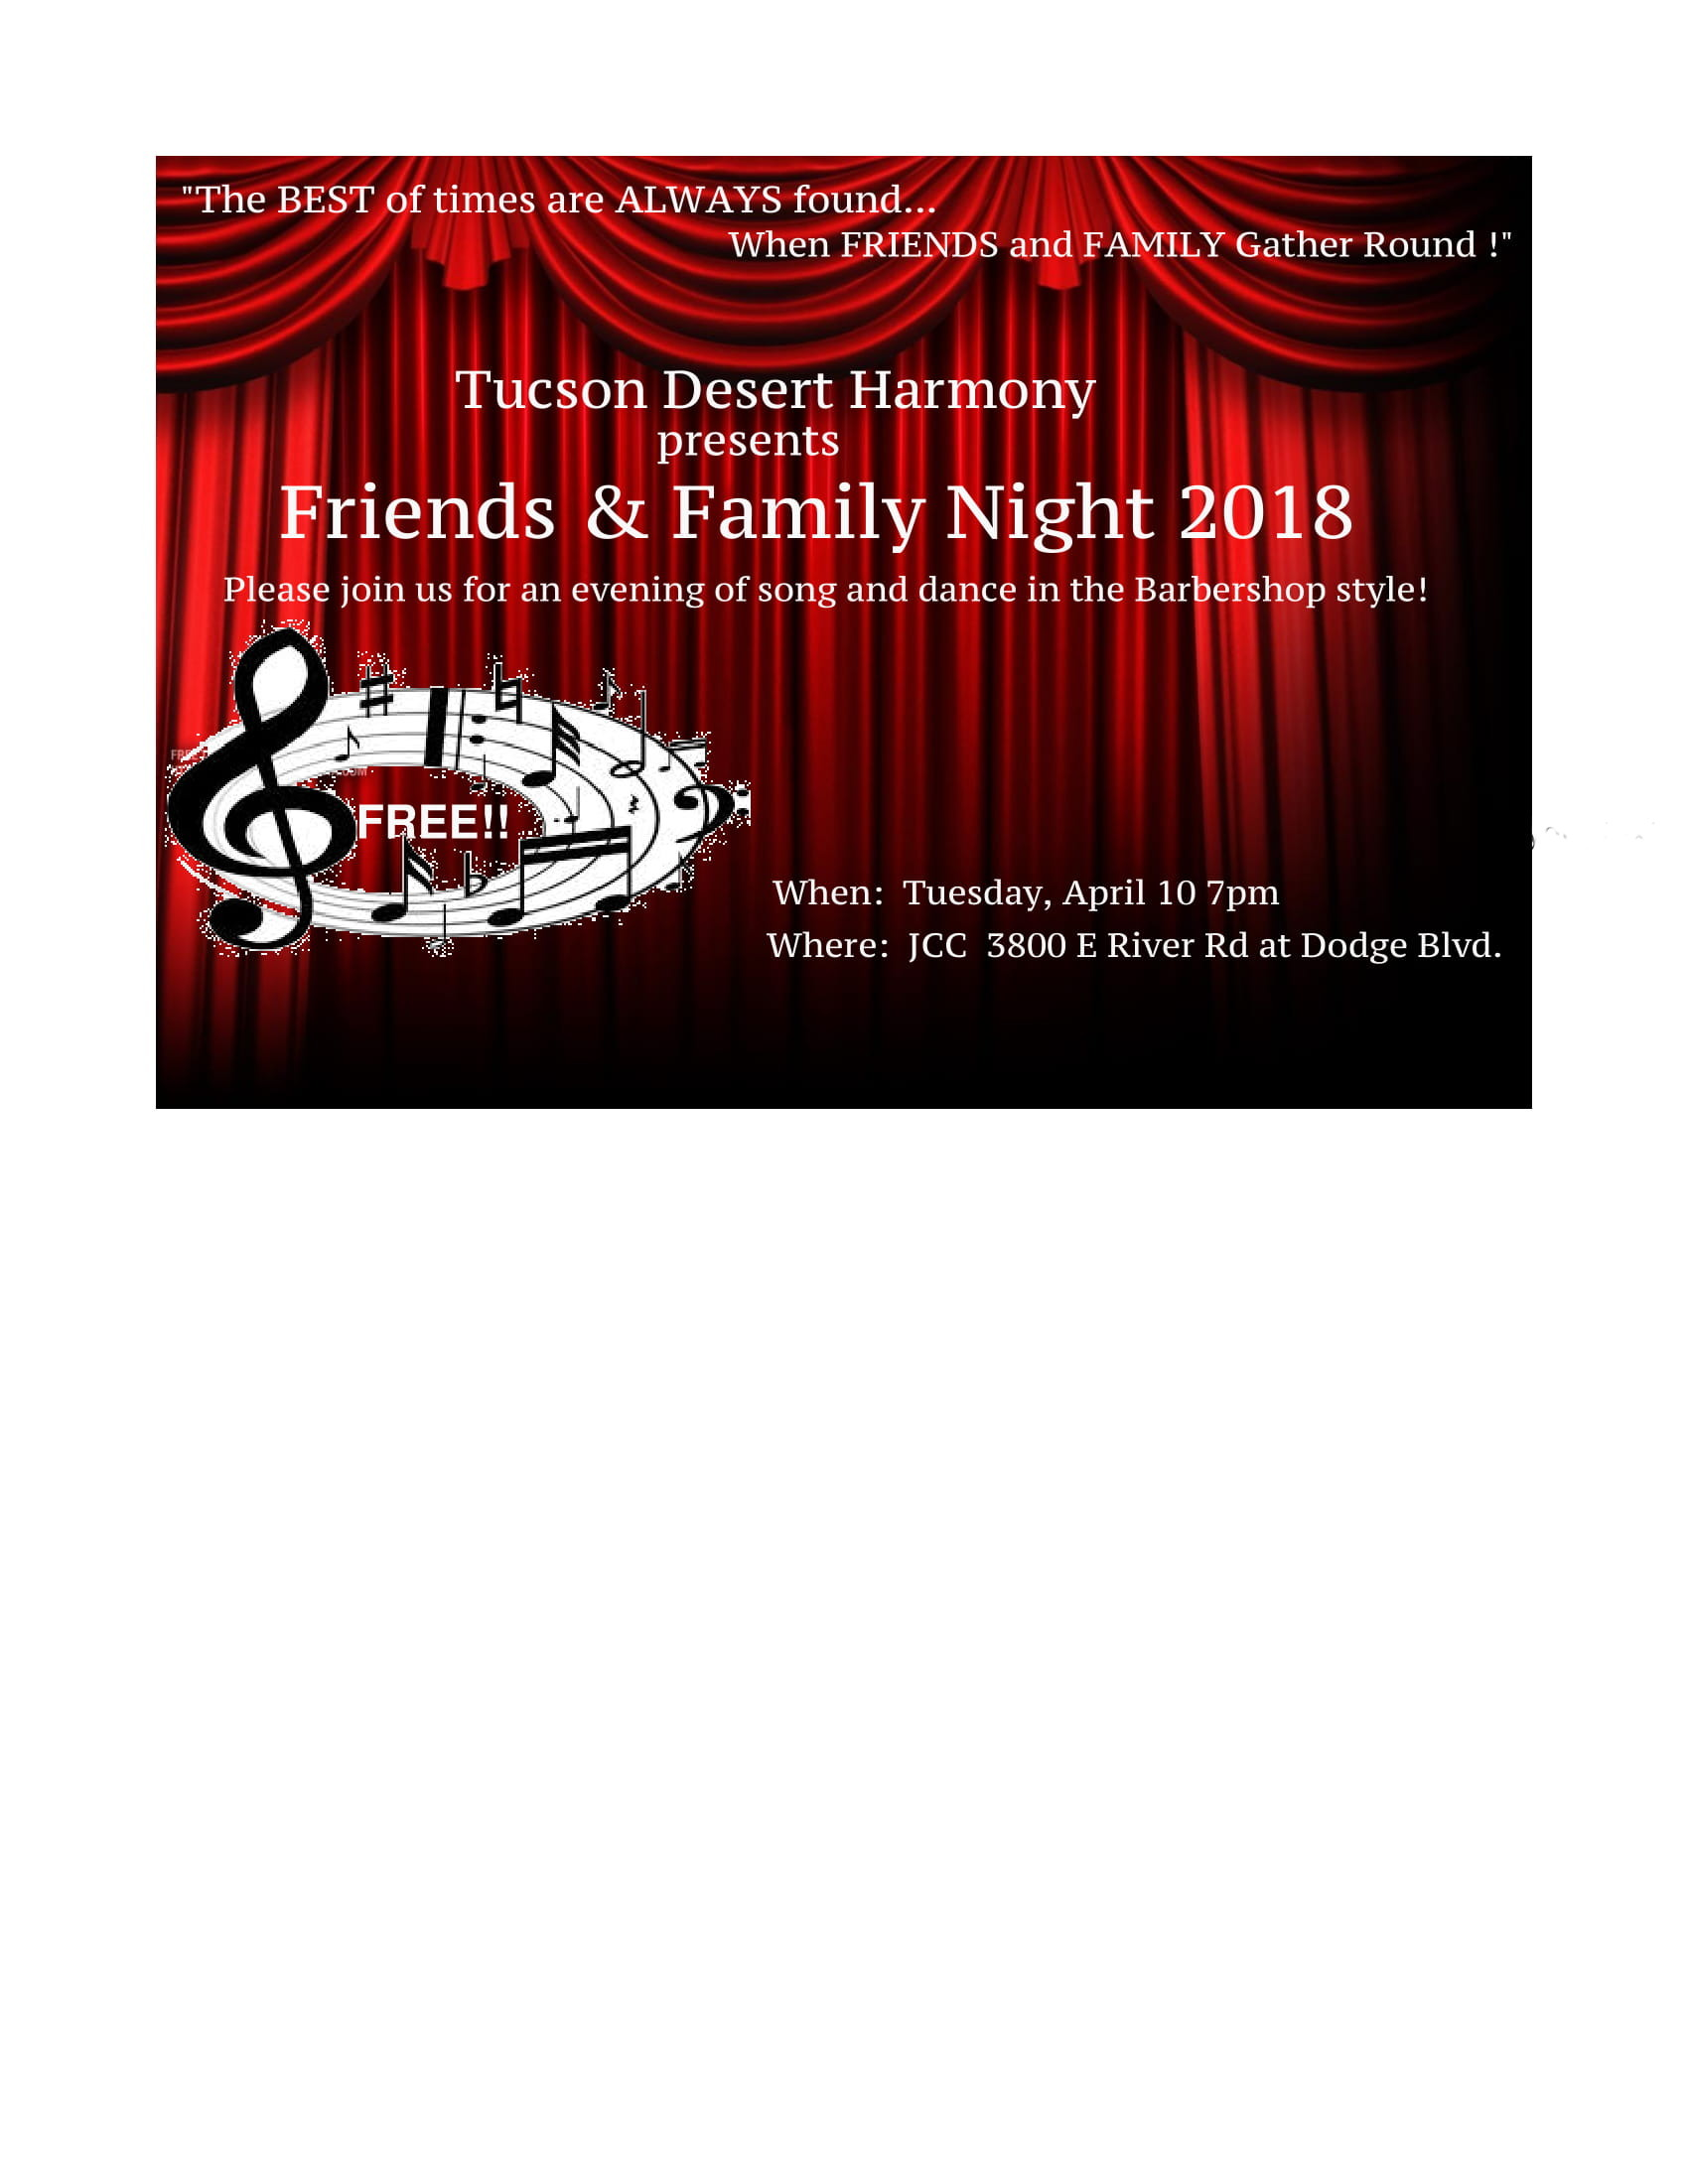 Friends and Family Night! Tuesday, April 10